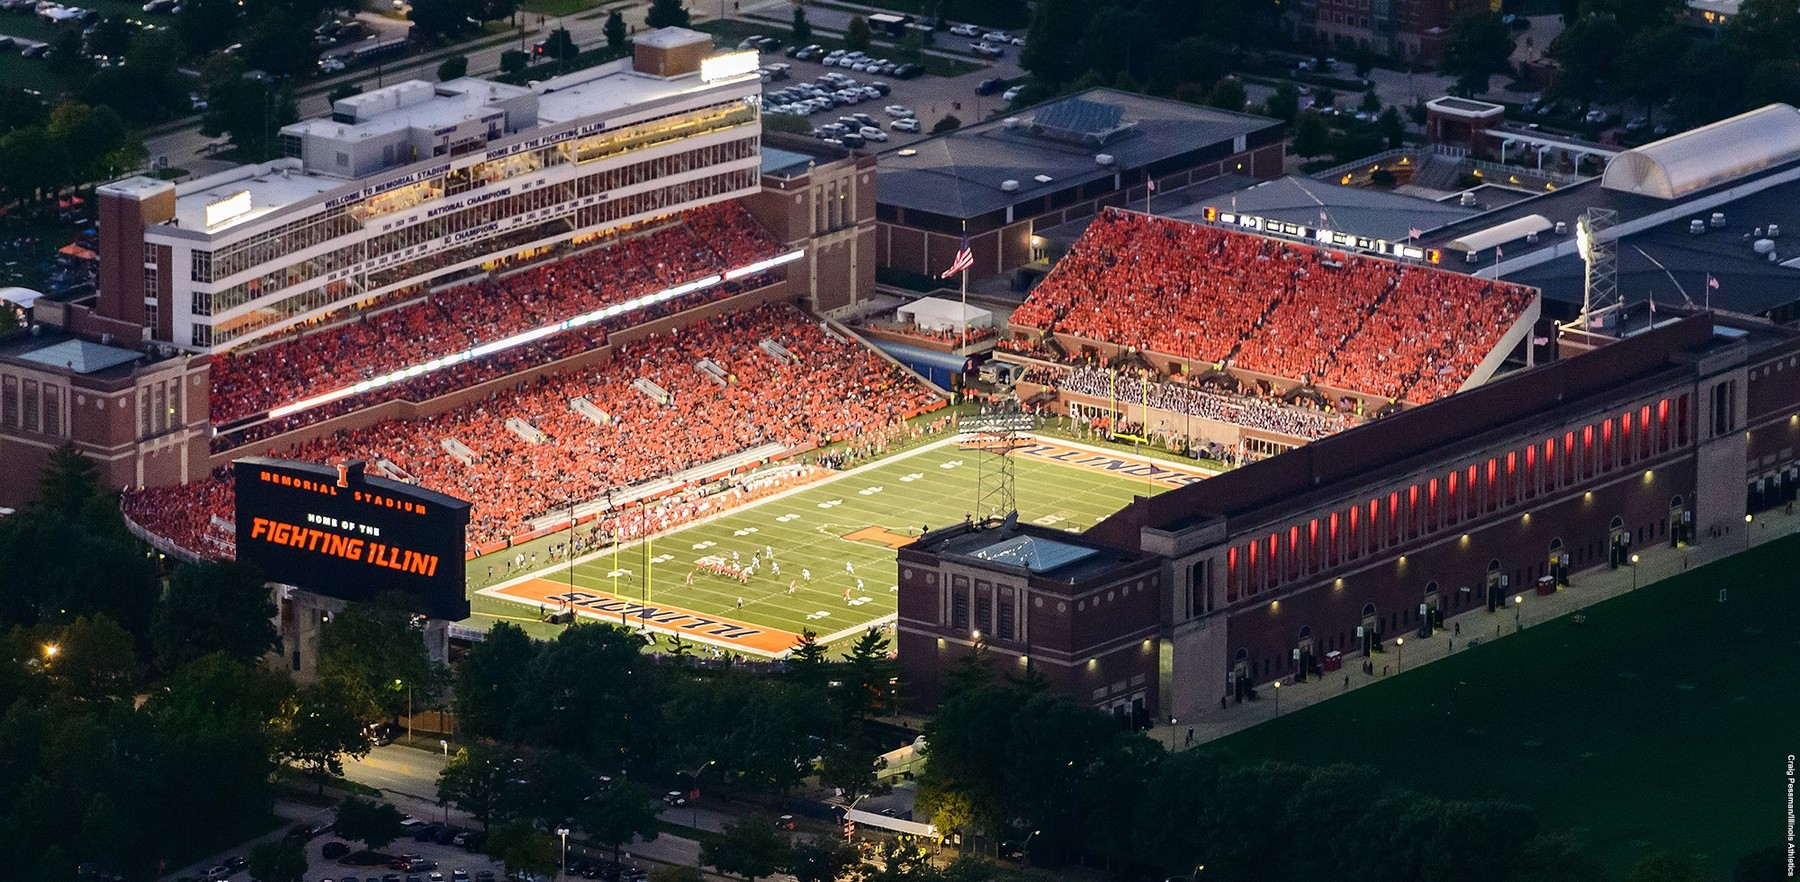 aerial image of Memorial Stadium lighted